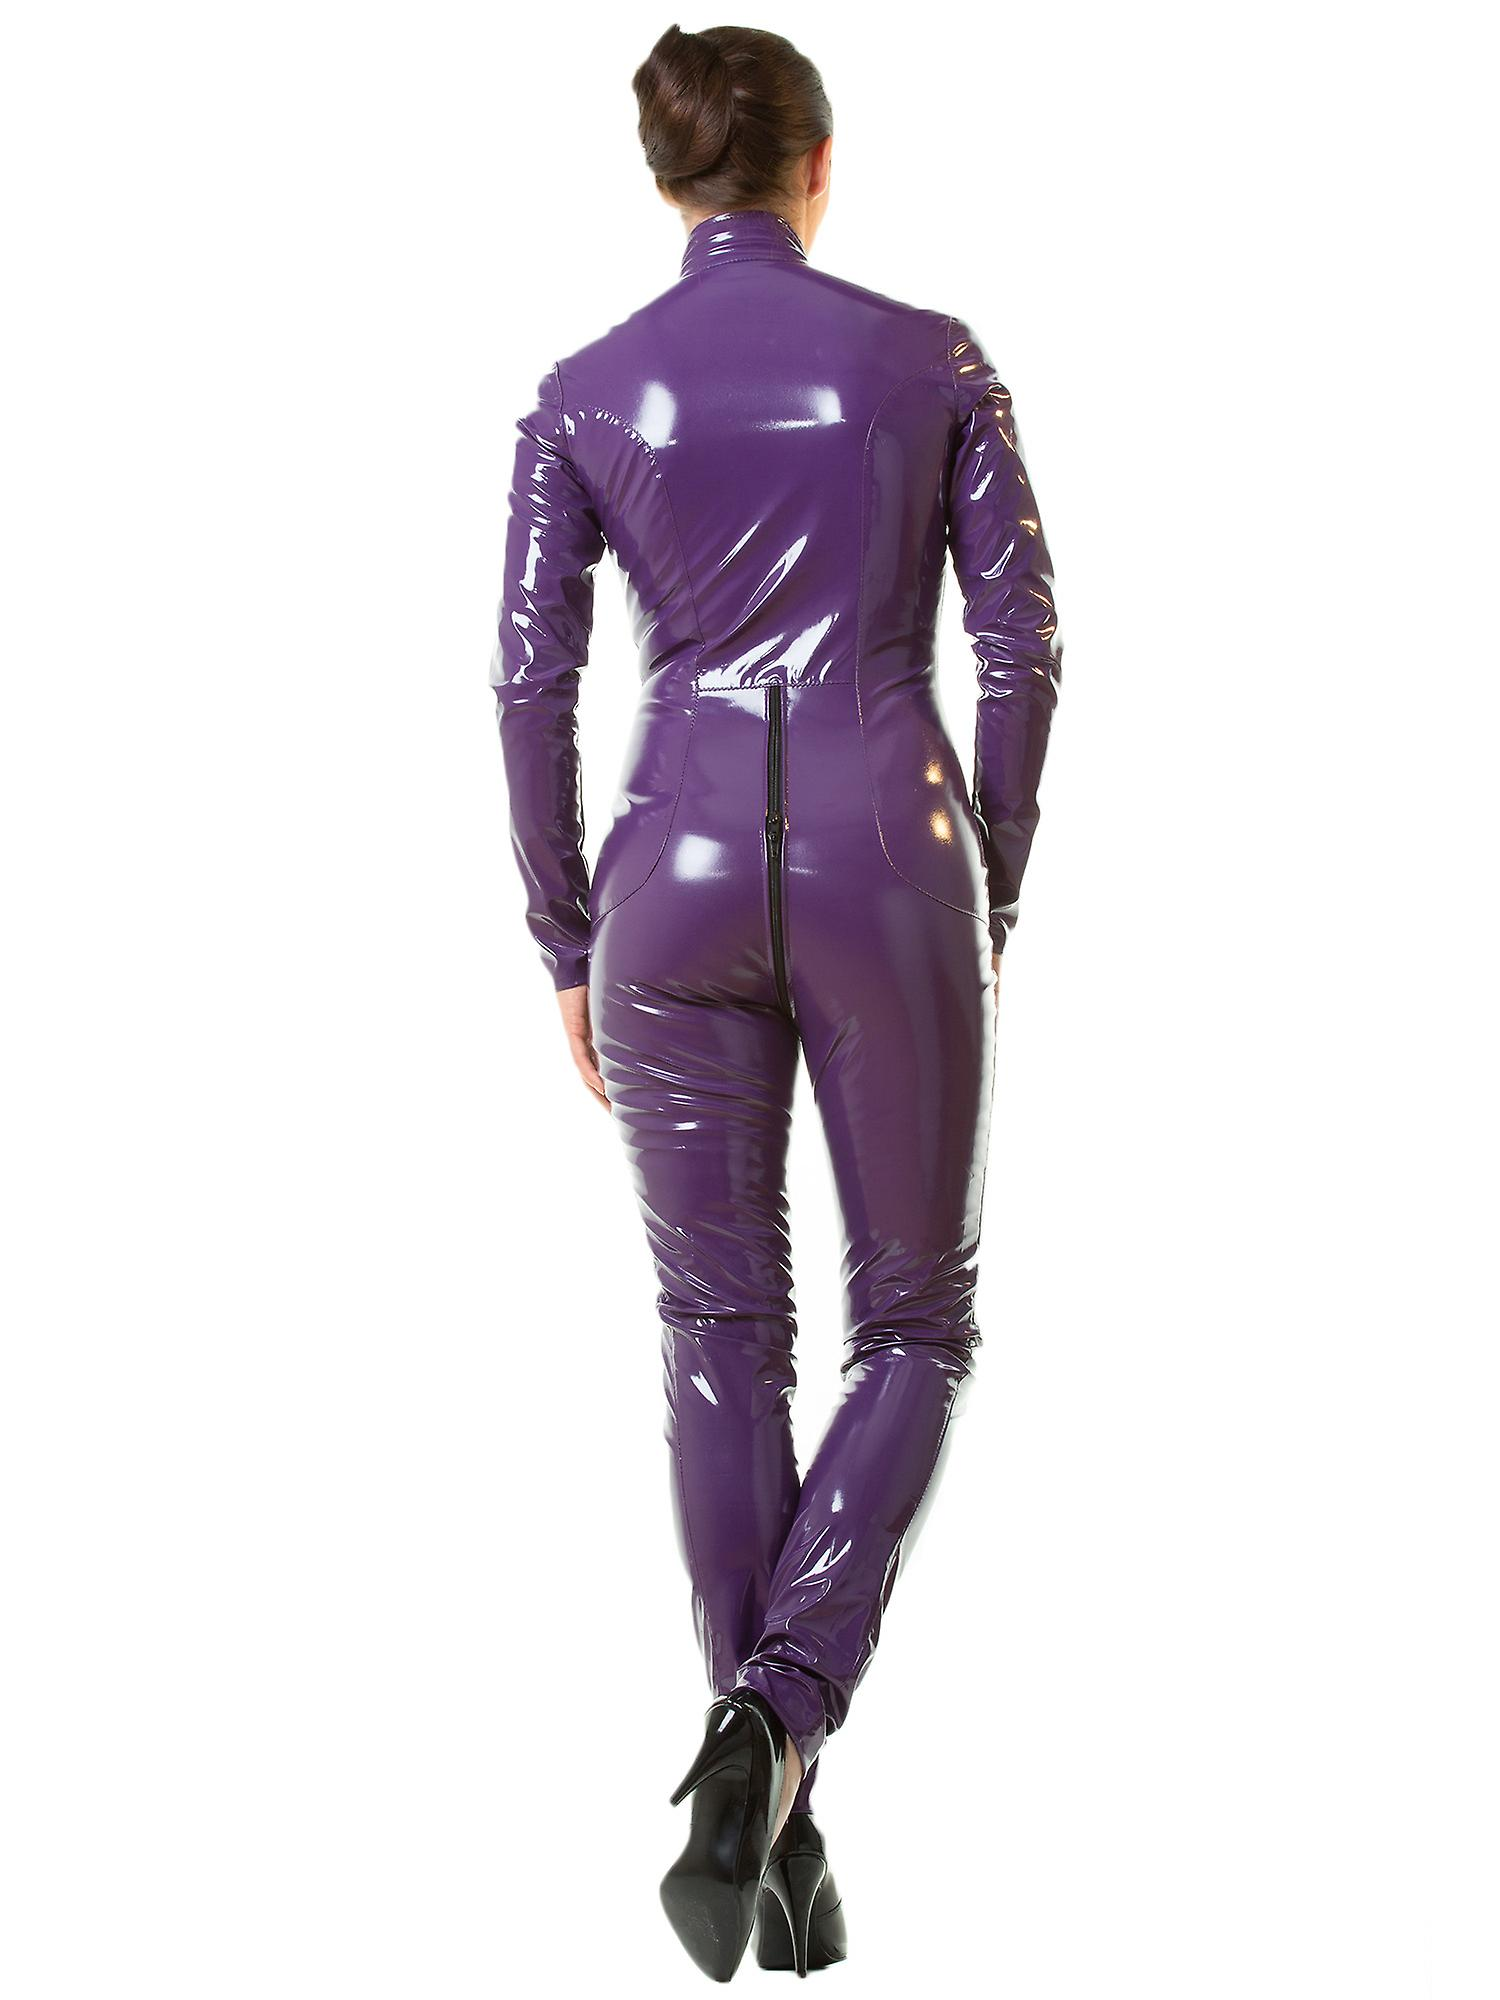 Honour Women's Sexy Catsuit in PVC Purple High Neck & Longsleeves